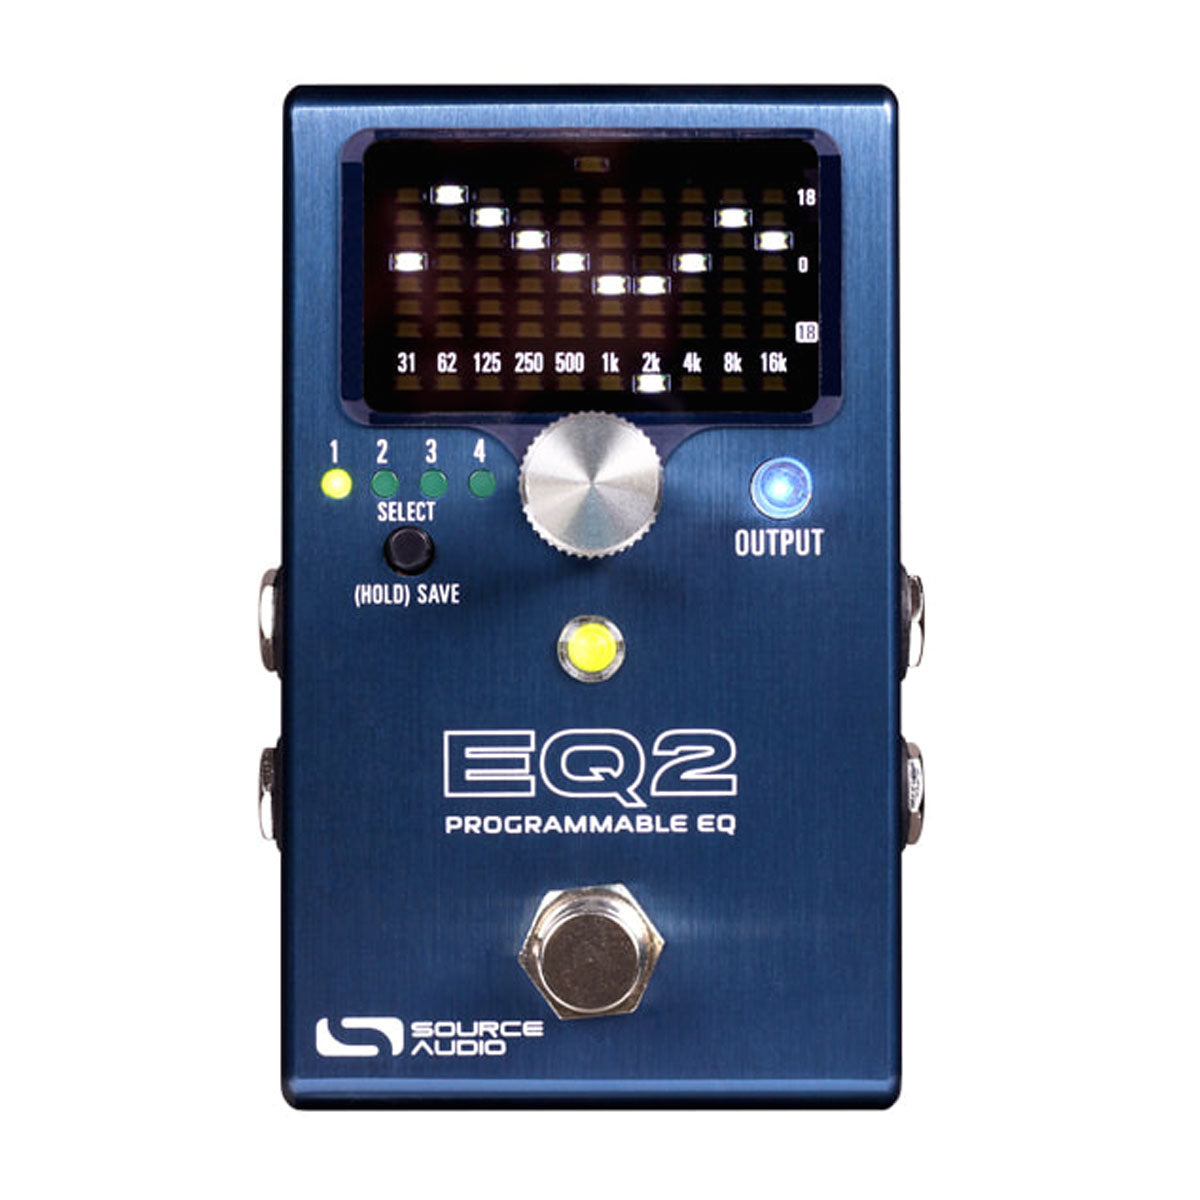 Source Audio EQ2 Programmable Equalizer Effects Pedal